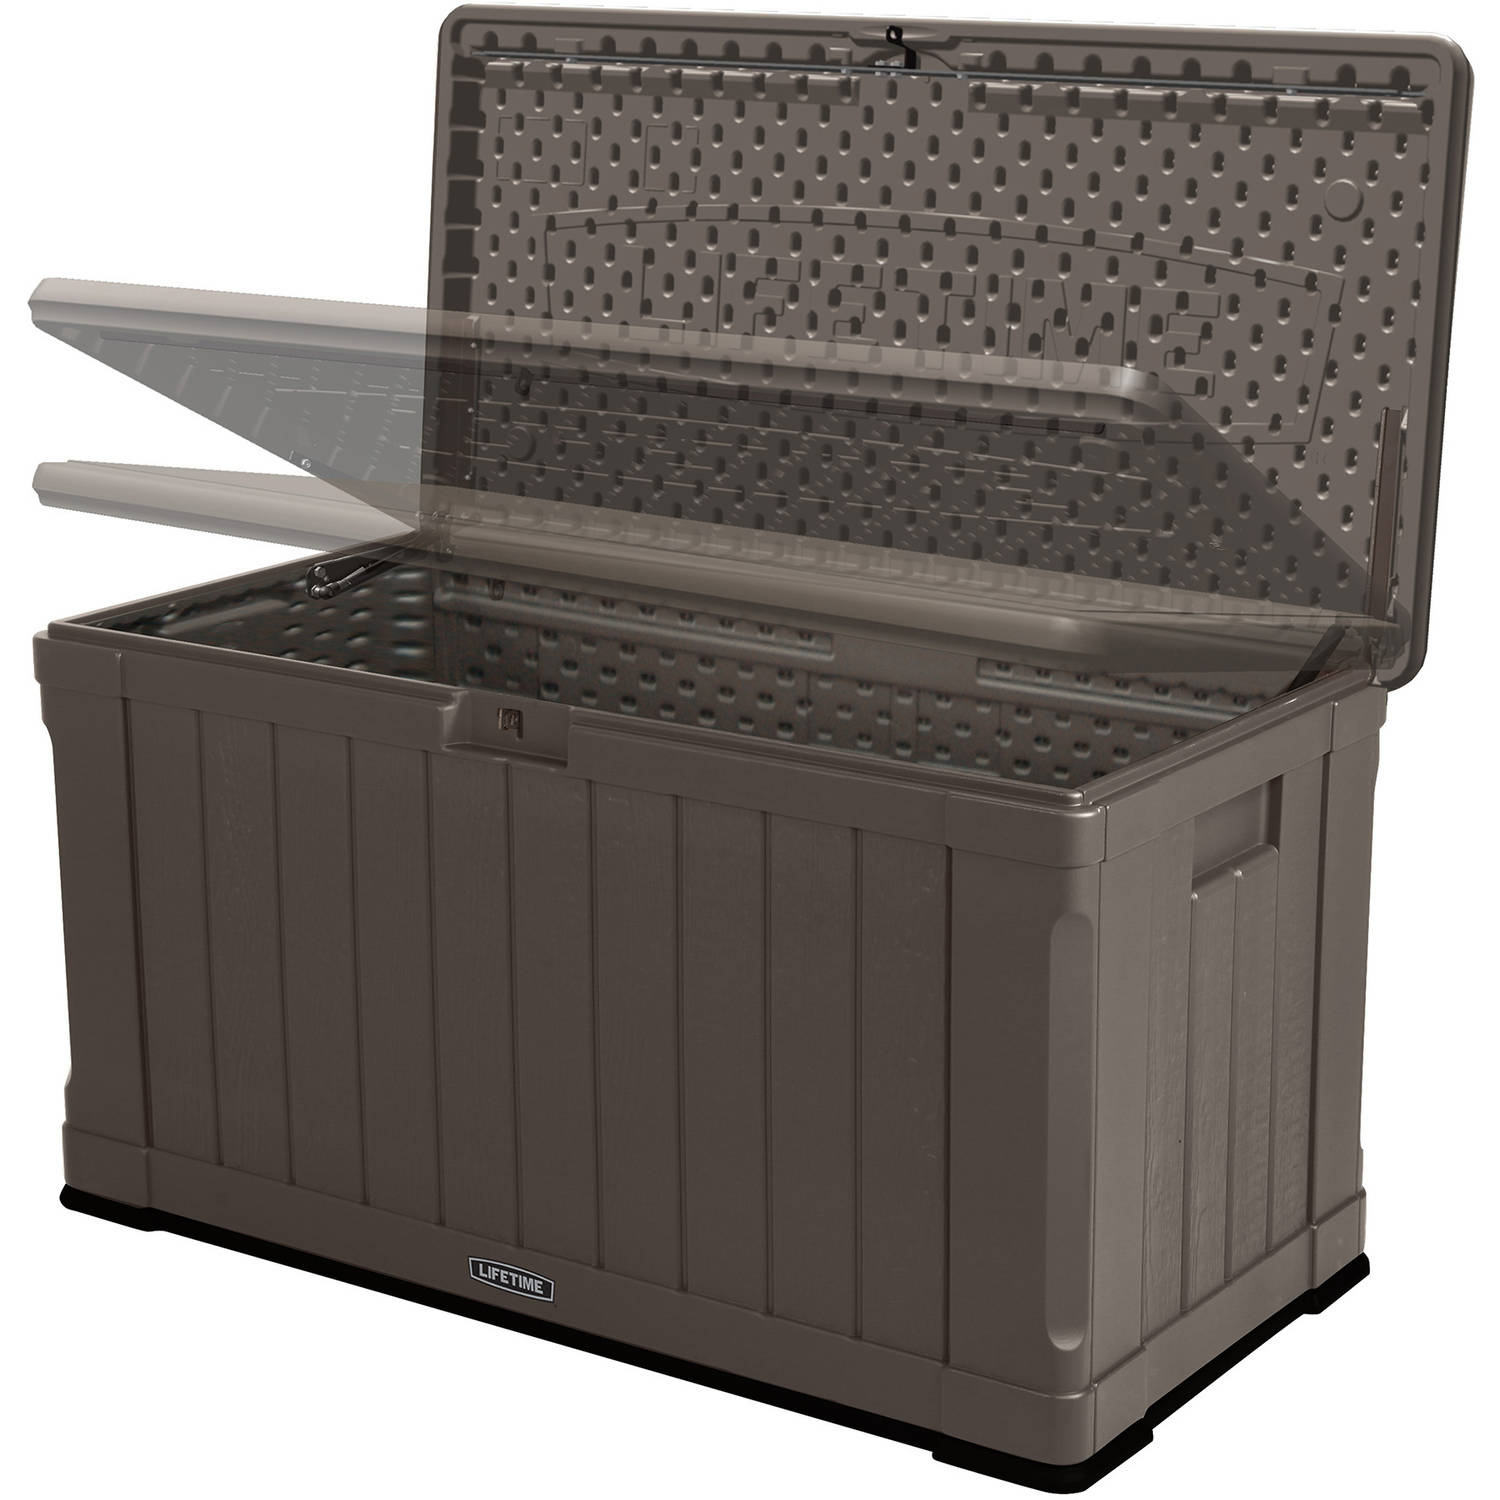 Lifetime Outdoor Storage Box (116 Gallon), 60089   Walmart.com